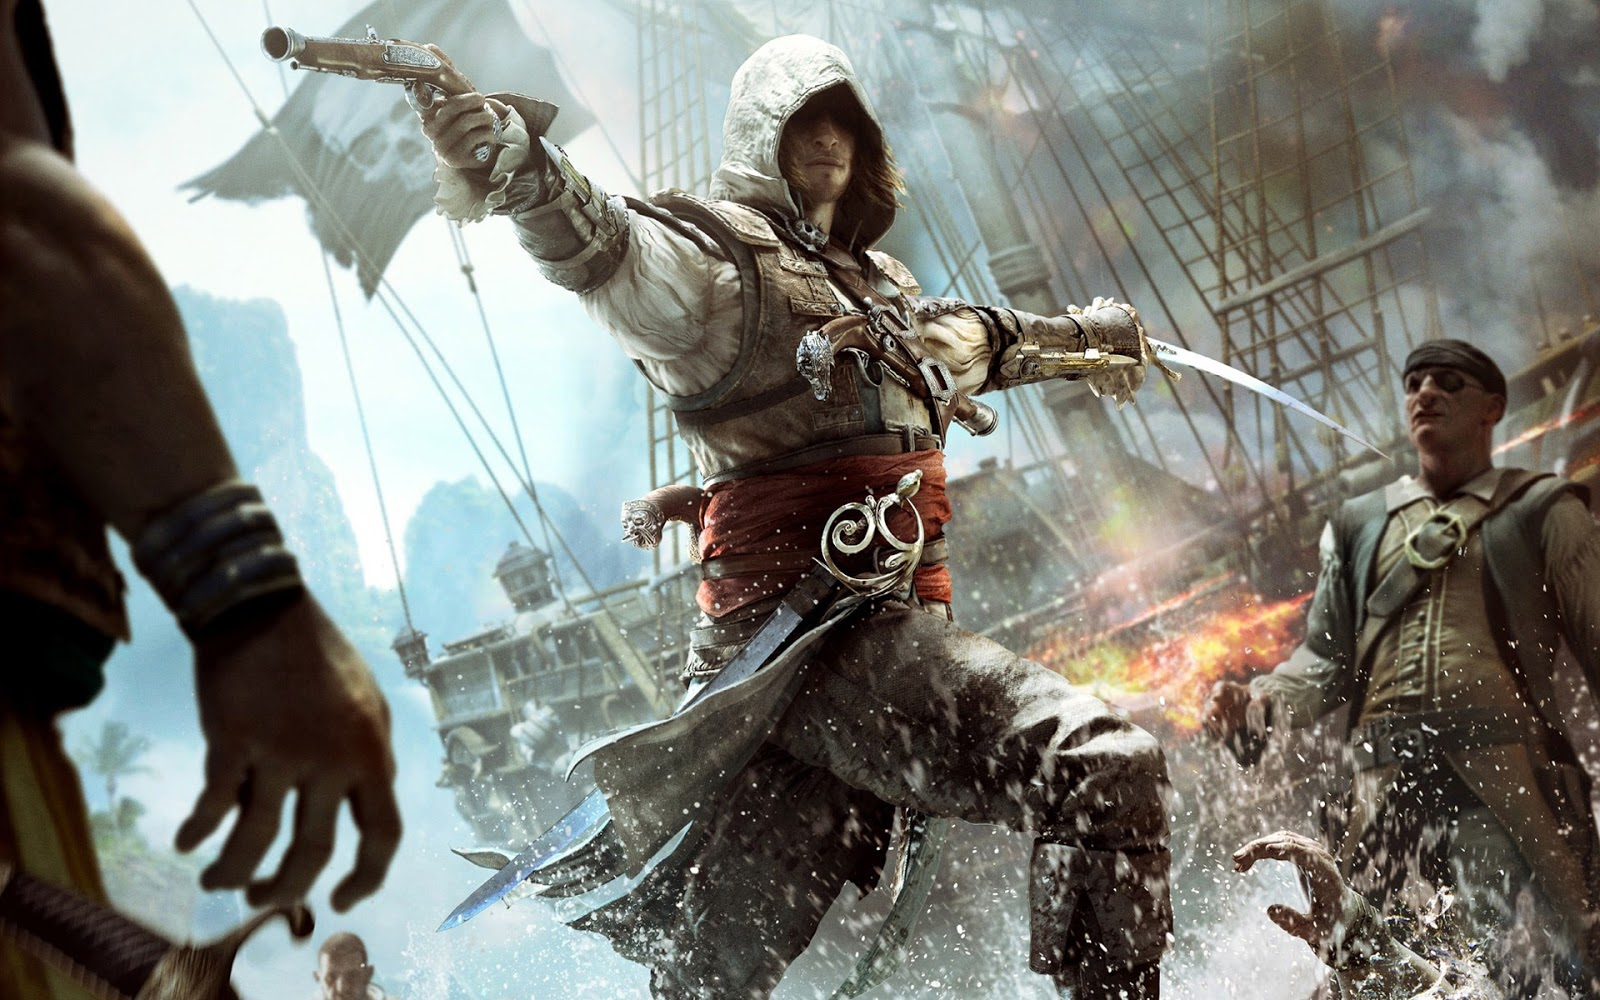 http://3.bp.blogspot.com/-I-Lu9lMNOCk/UTzV2qYZXHI/AAAAAAAANEE/2MLQjbnO_iA/s1600/assassins_creed_iv-wallpapers_hd+(4).jpg